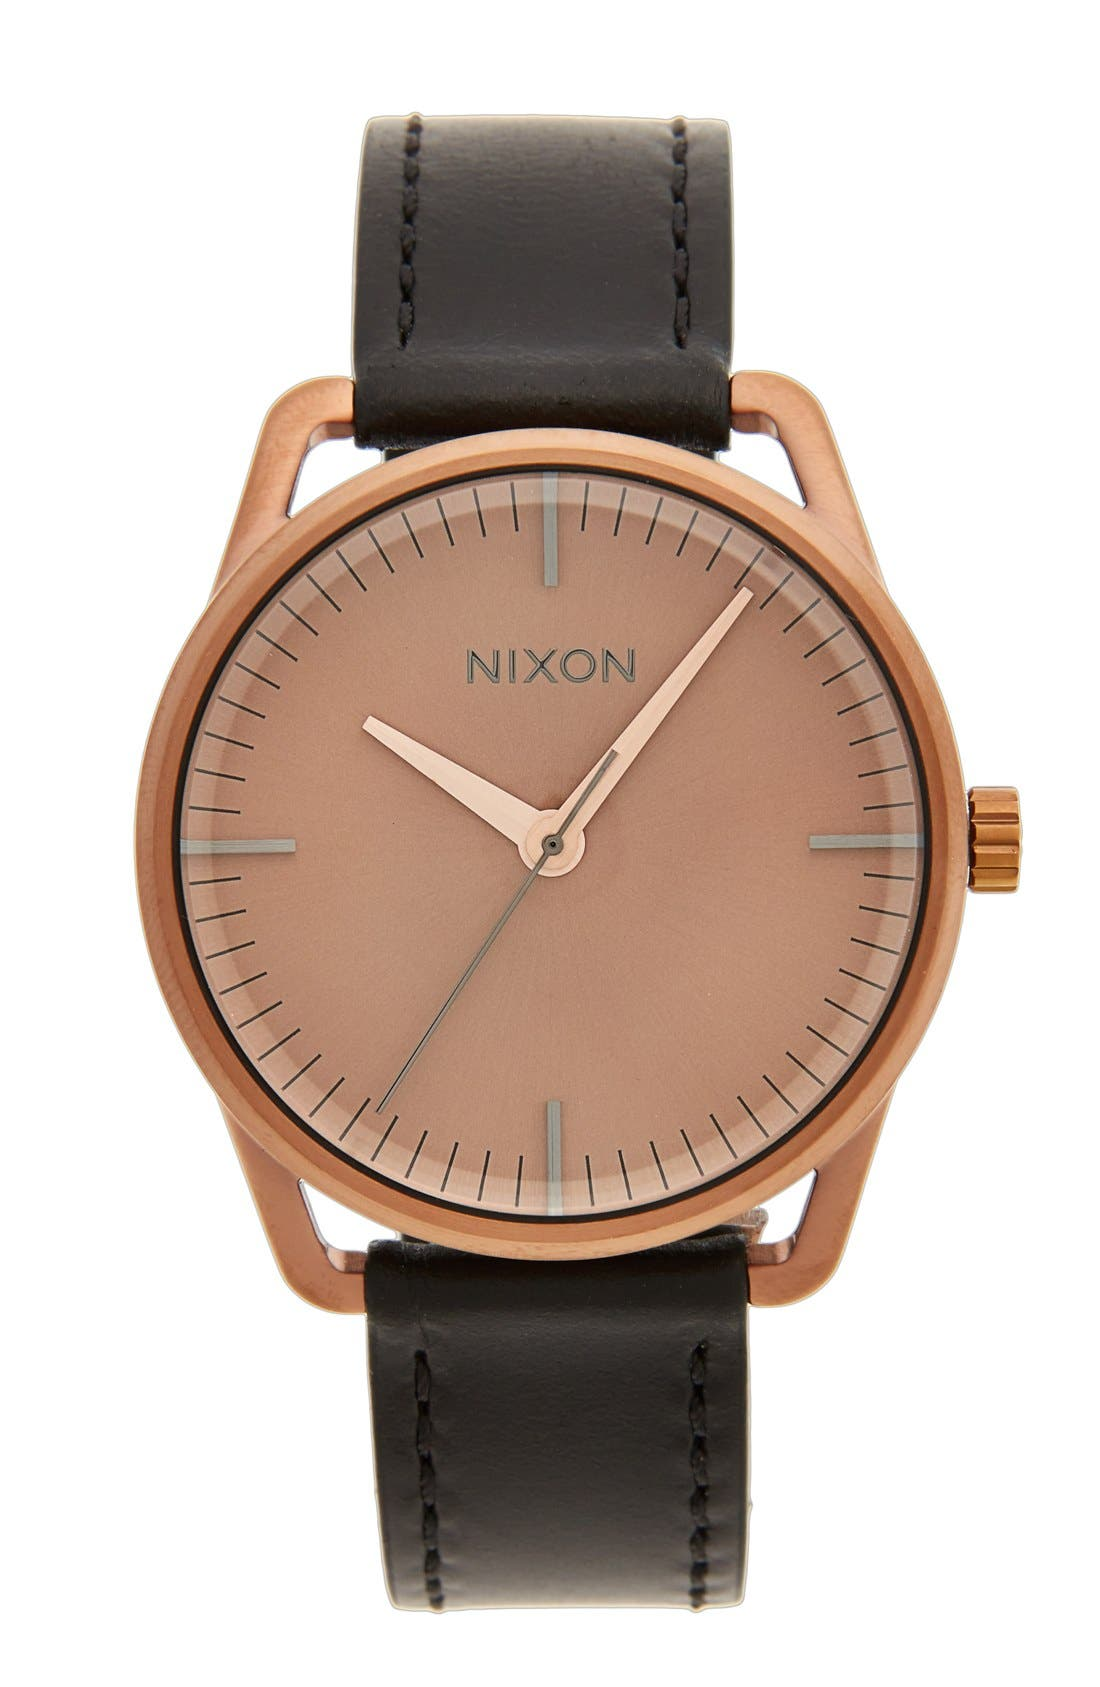 NIXON,                             'The Mellor' Leather Strap Watch, 38mm,                             Main thumbnail 1, color,                             001